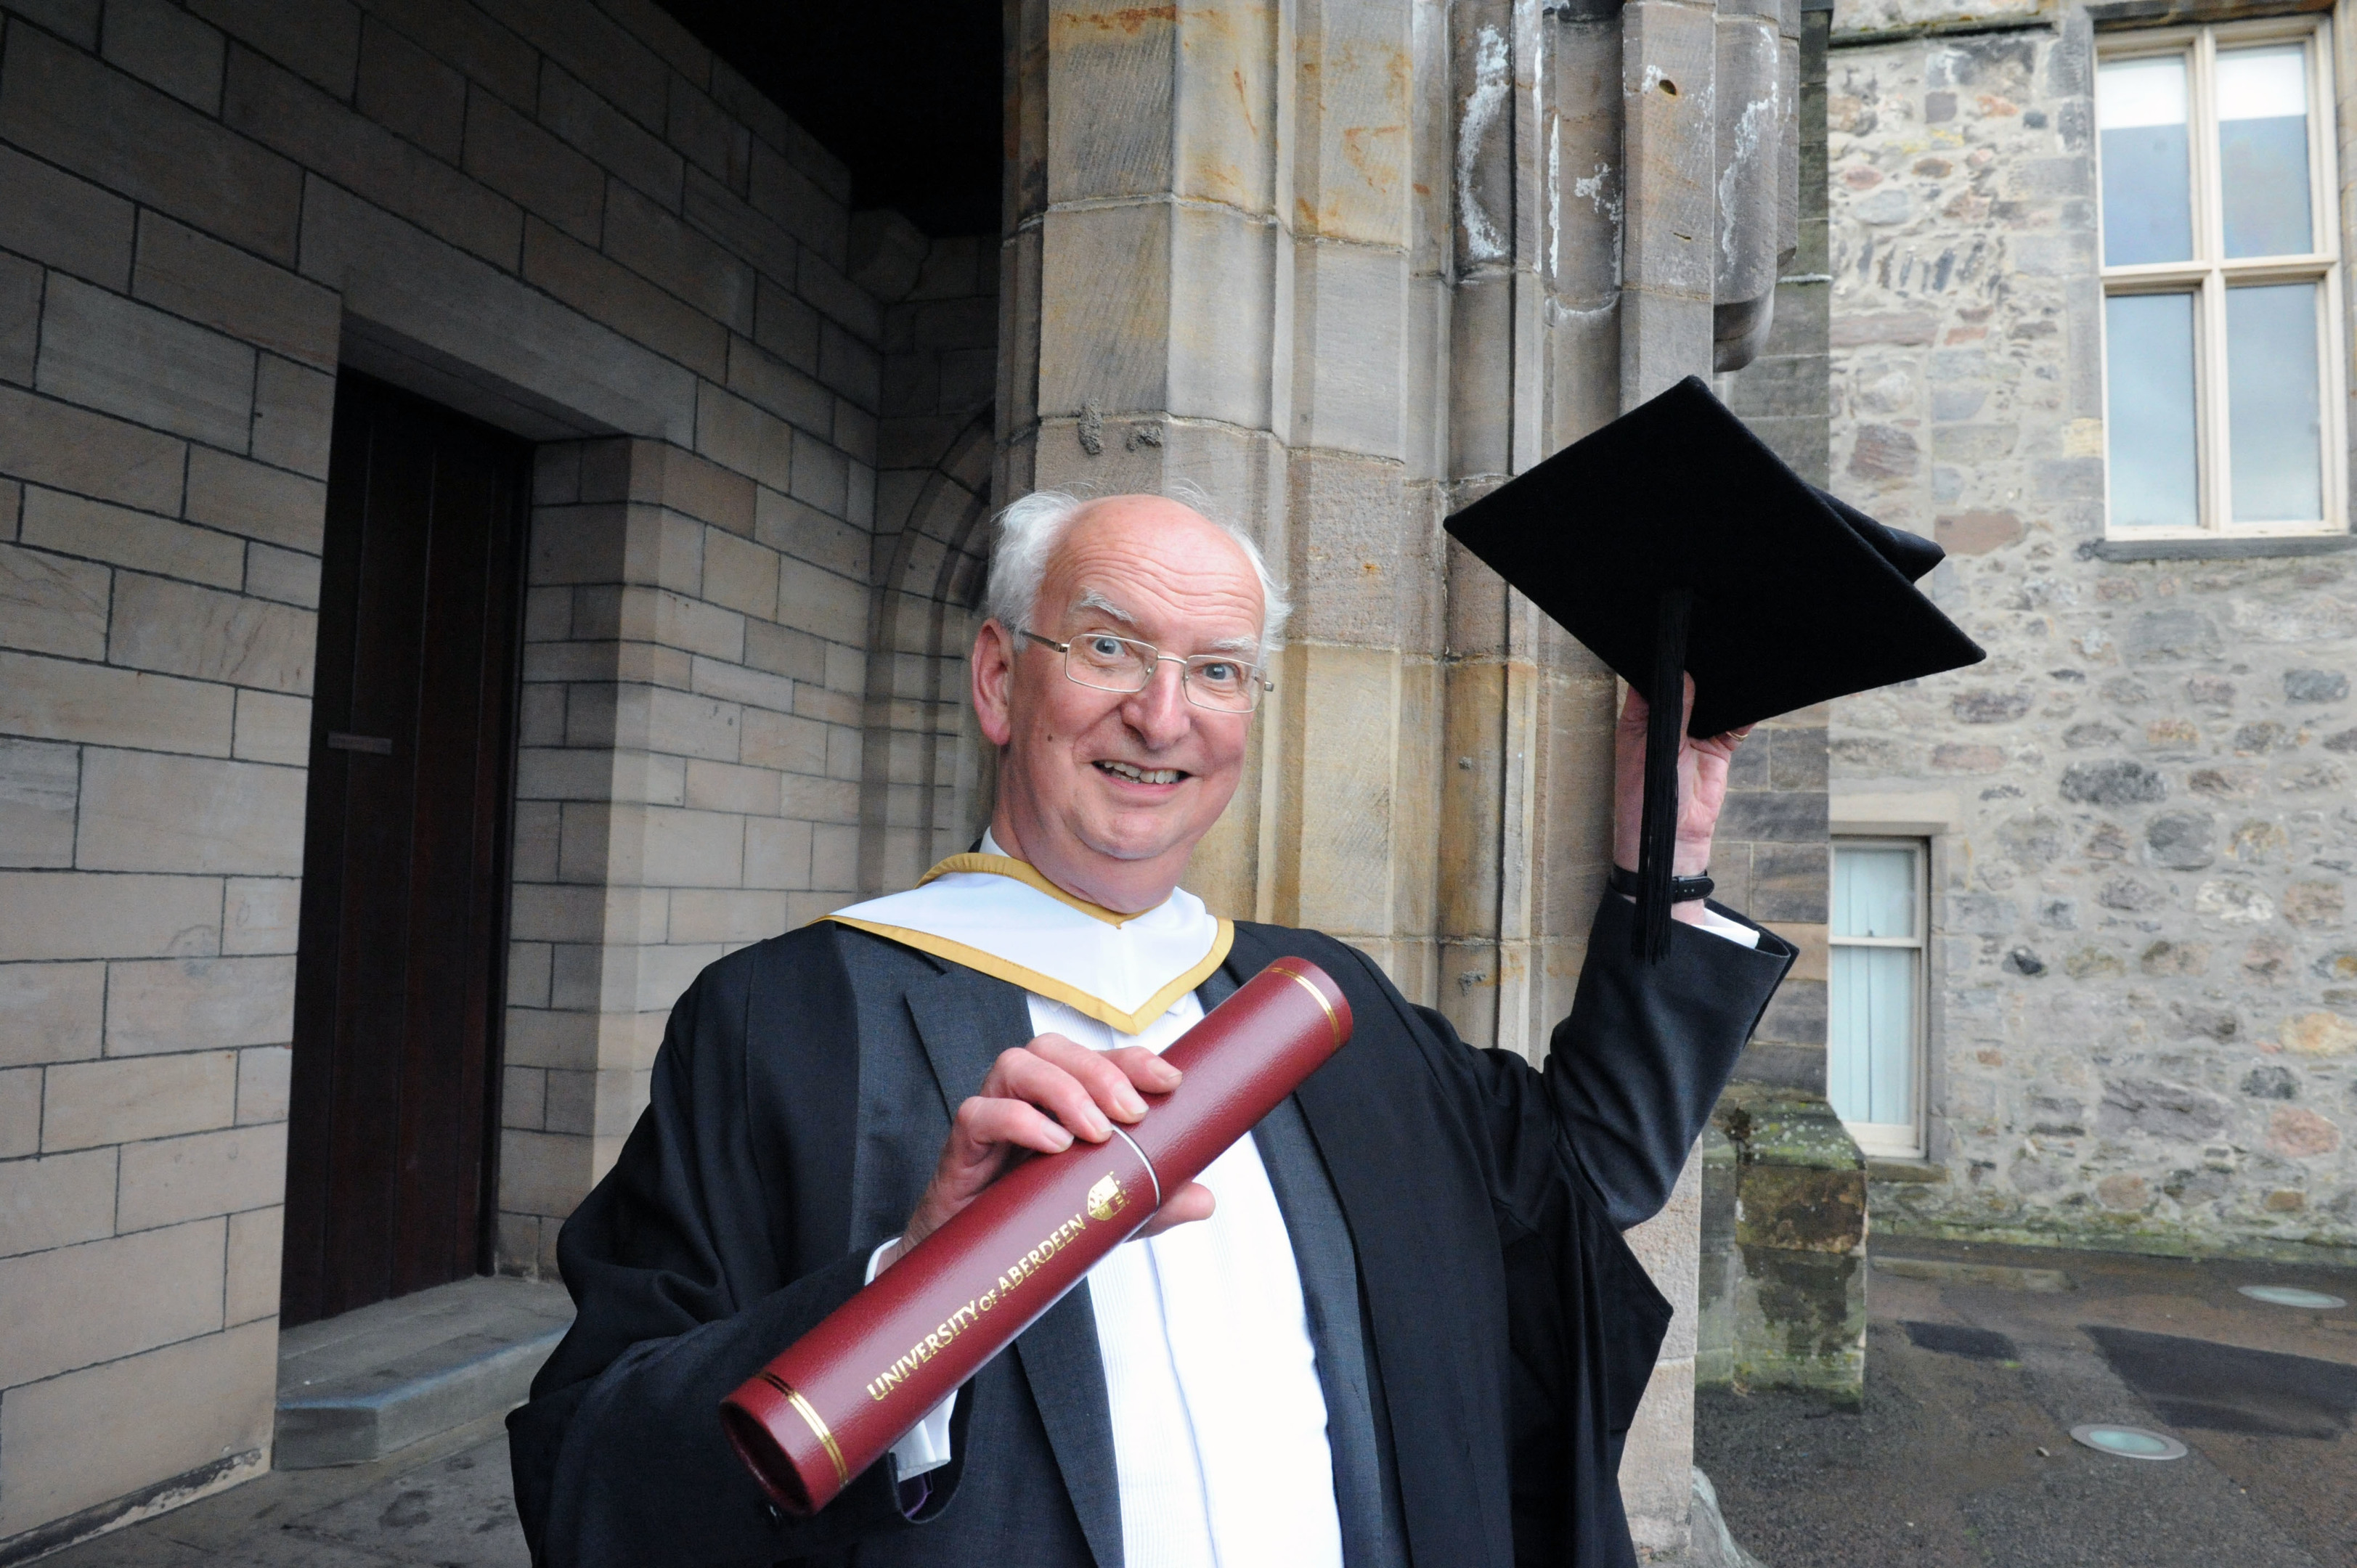 Alistair Macdonald picking up his honorary degree in 2015.